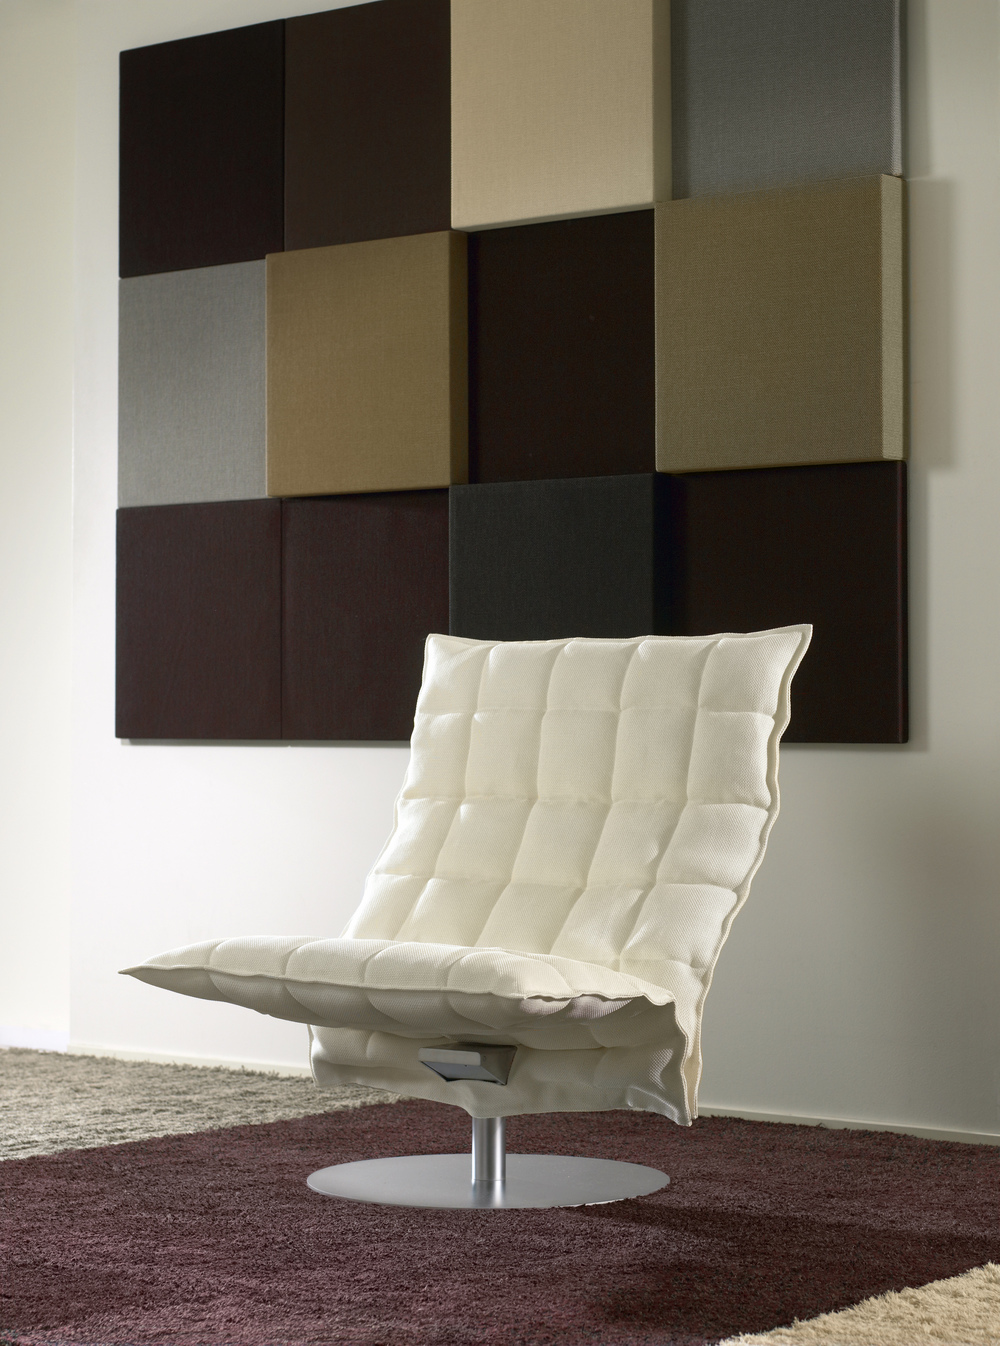 Whisper acoustic panels collage upholstered with Sand paper yarn cotton fabric, different colours and sizes